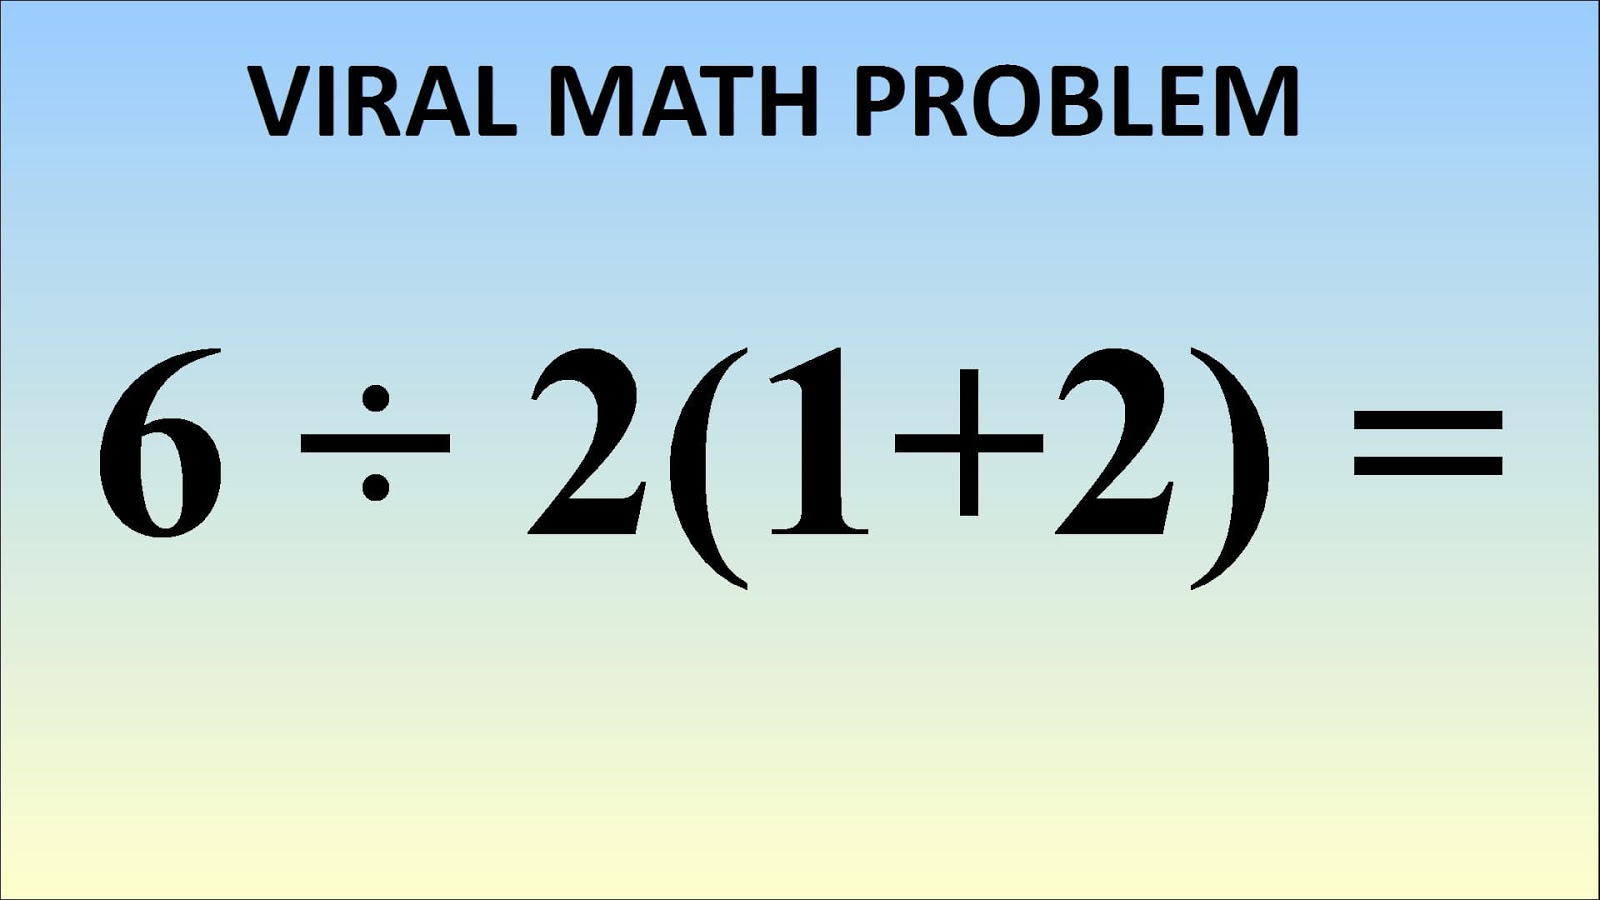 TEST: This Math Equation Is Breaking The Internet. Can You Figure Out The Right Solution?